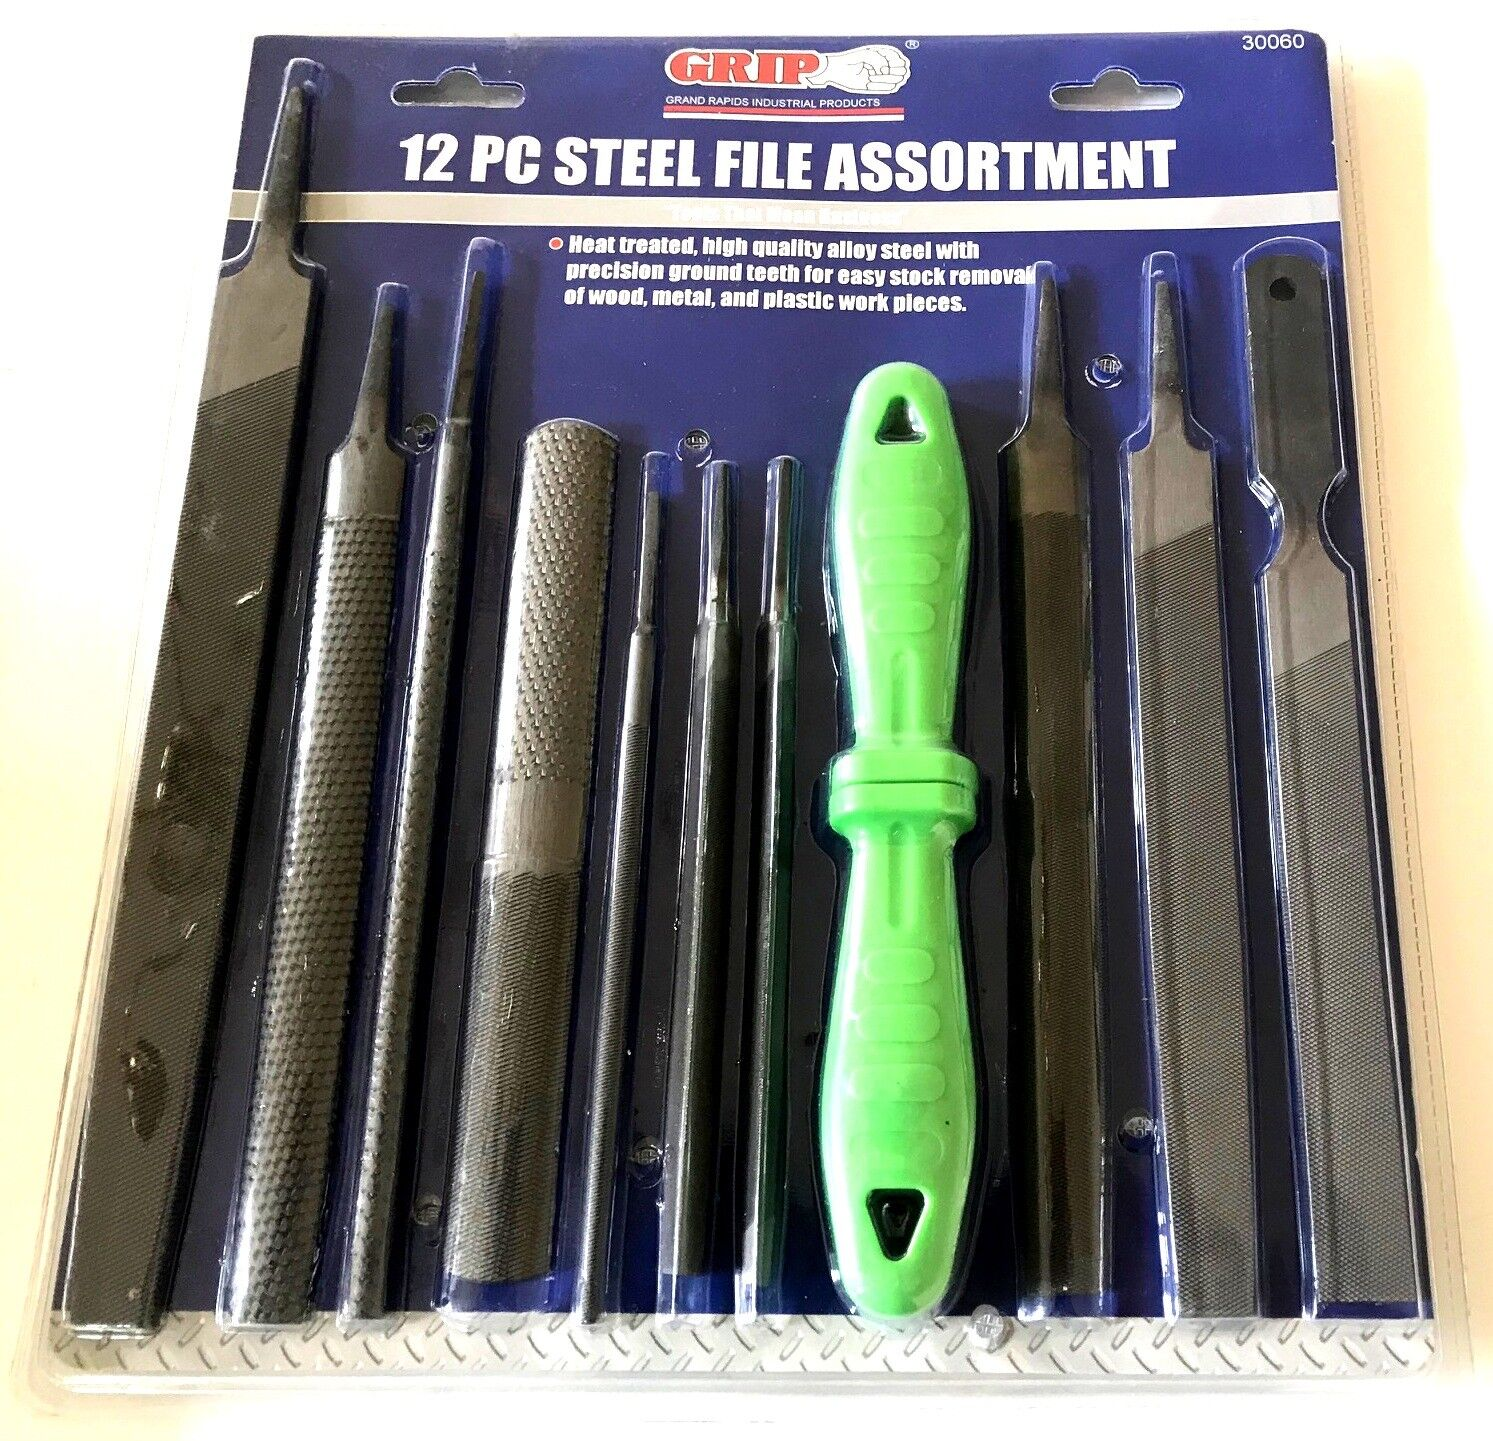 12pc GRIP TOOLS HEAVY DUTY STEEL FILE RASP AND BASTARD SET M